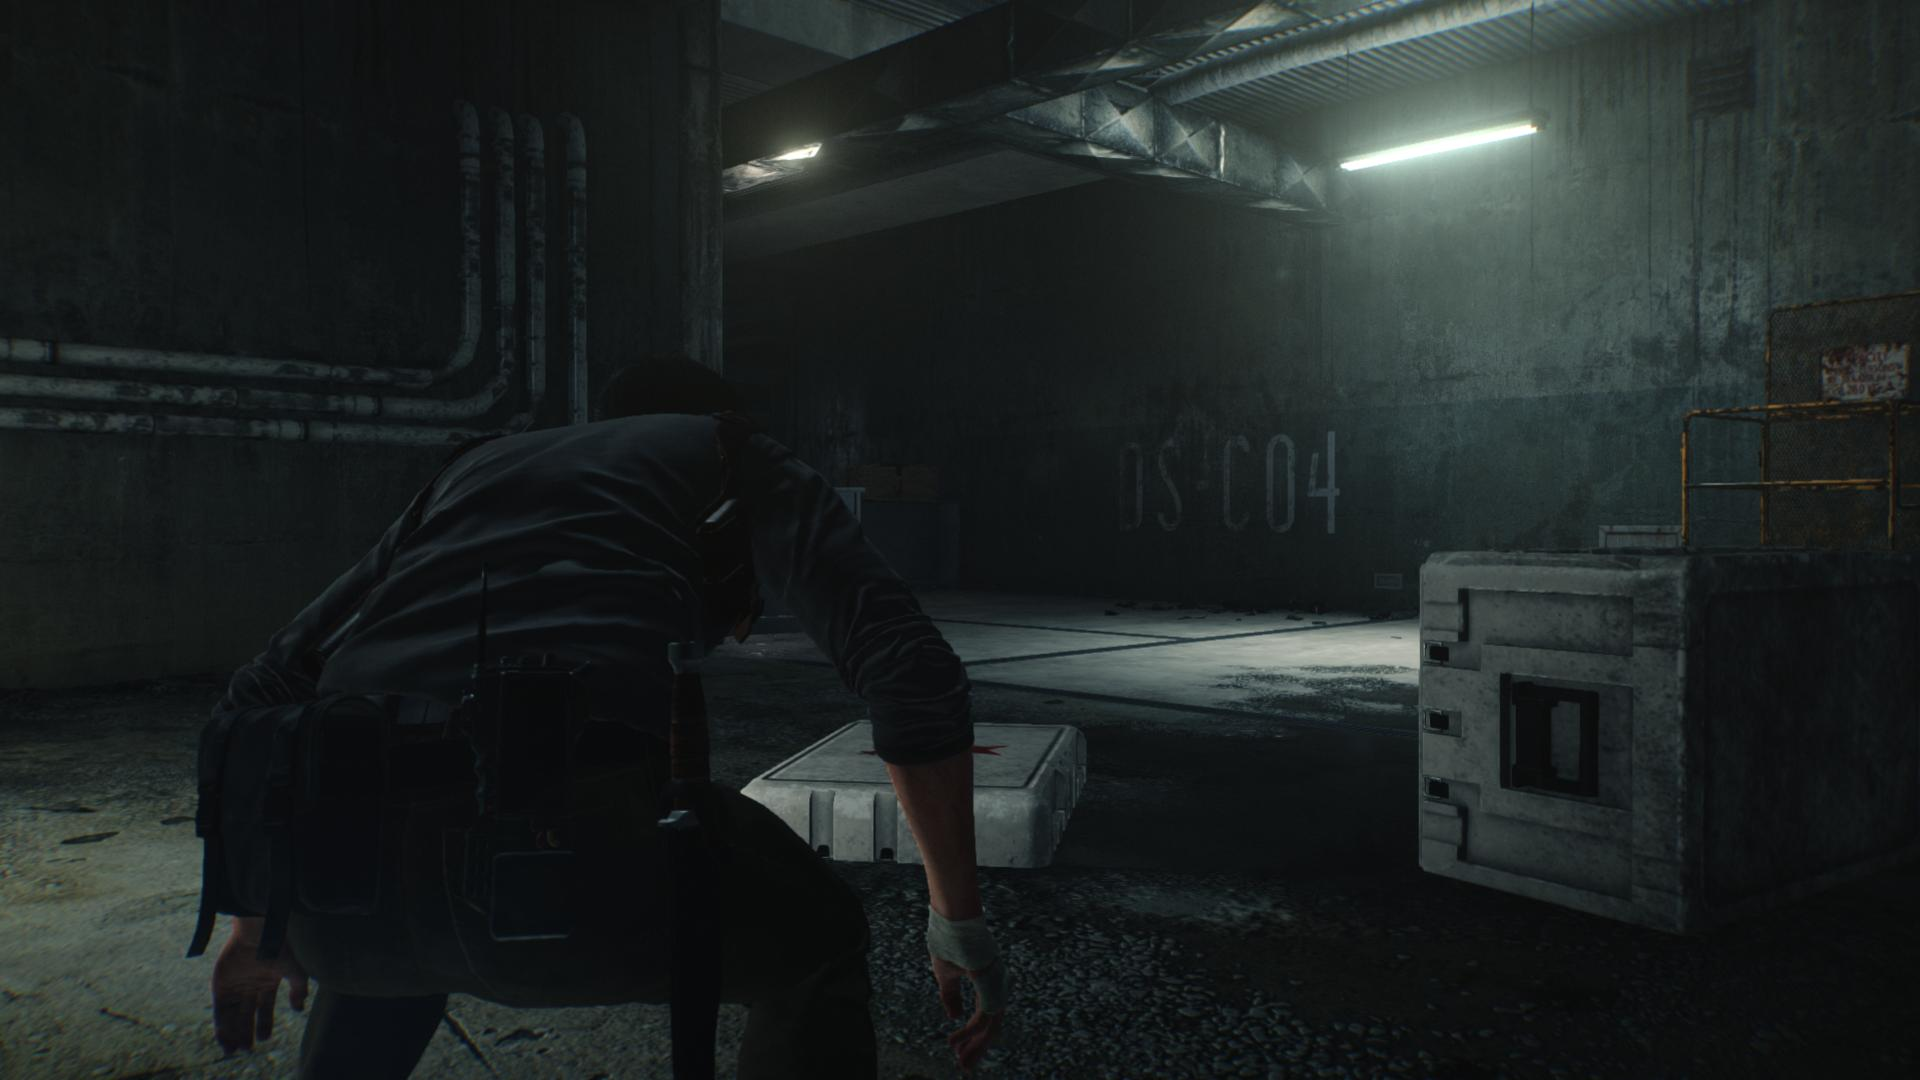 00011.Jpg - Evil Within 2, the